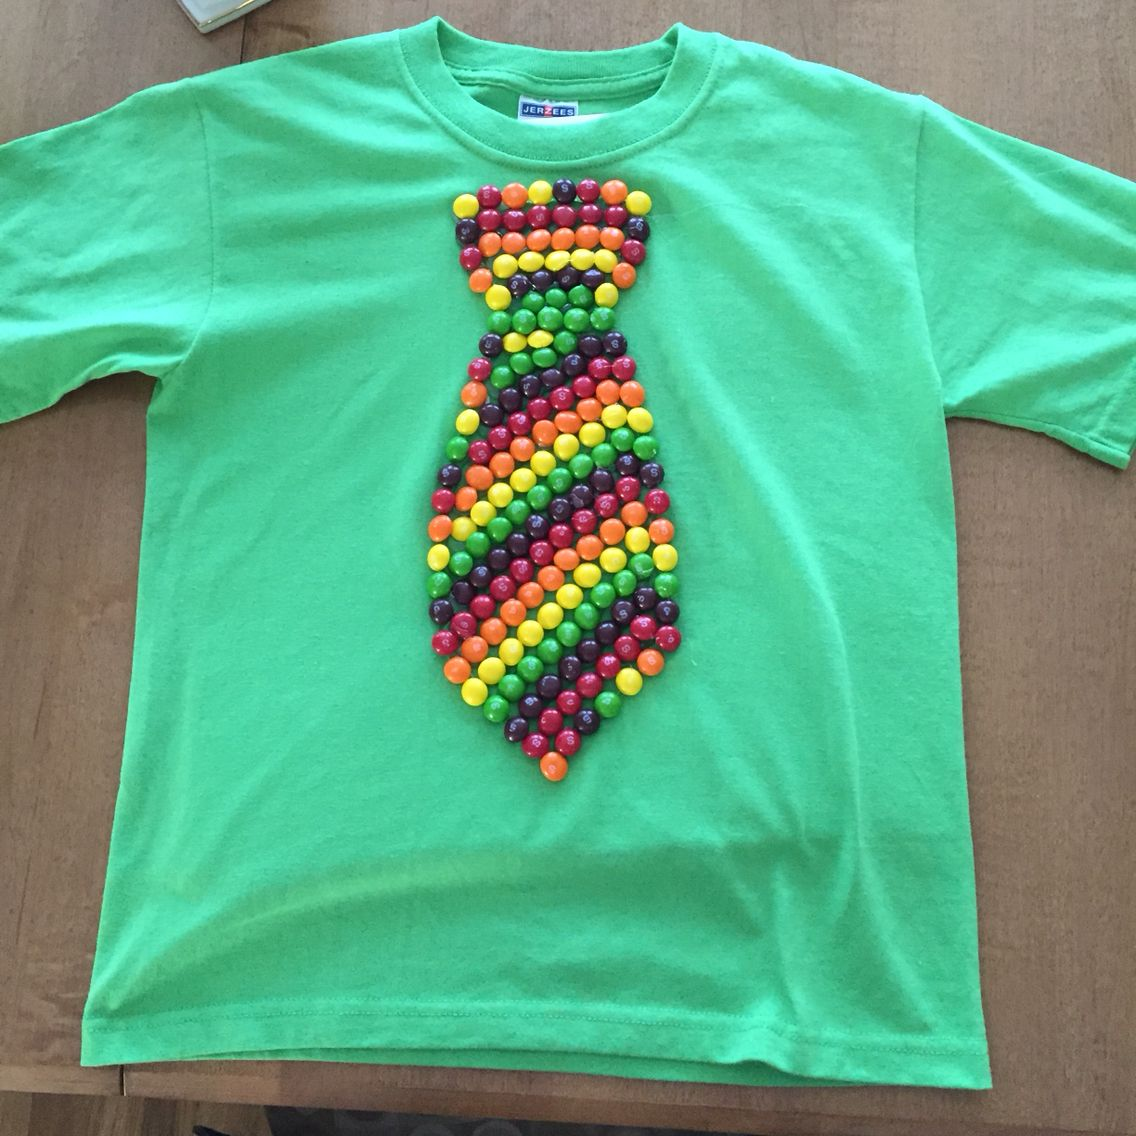 100 Day Of School Shirt The Skittle Tie School Tshirts 100 Day